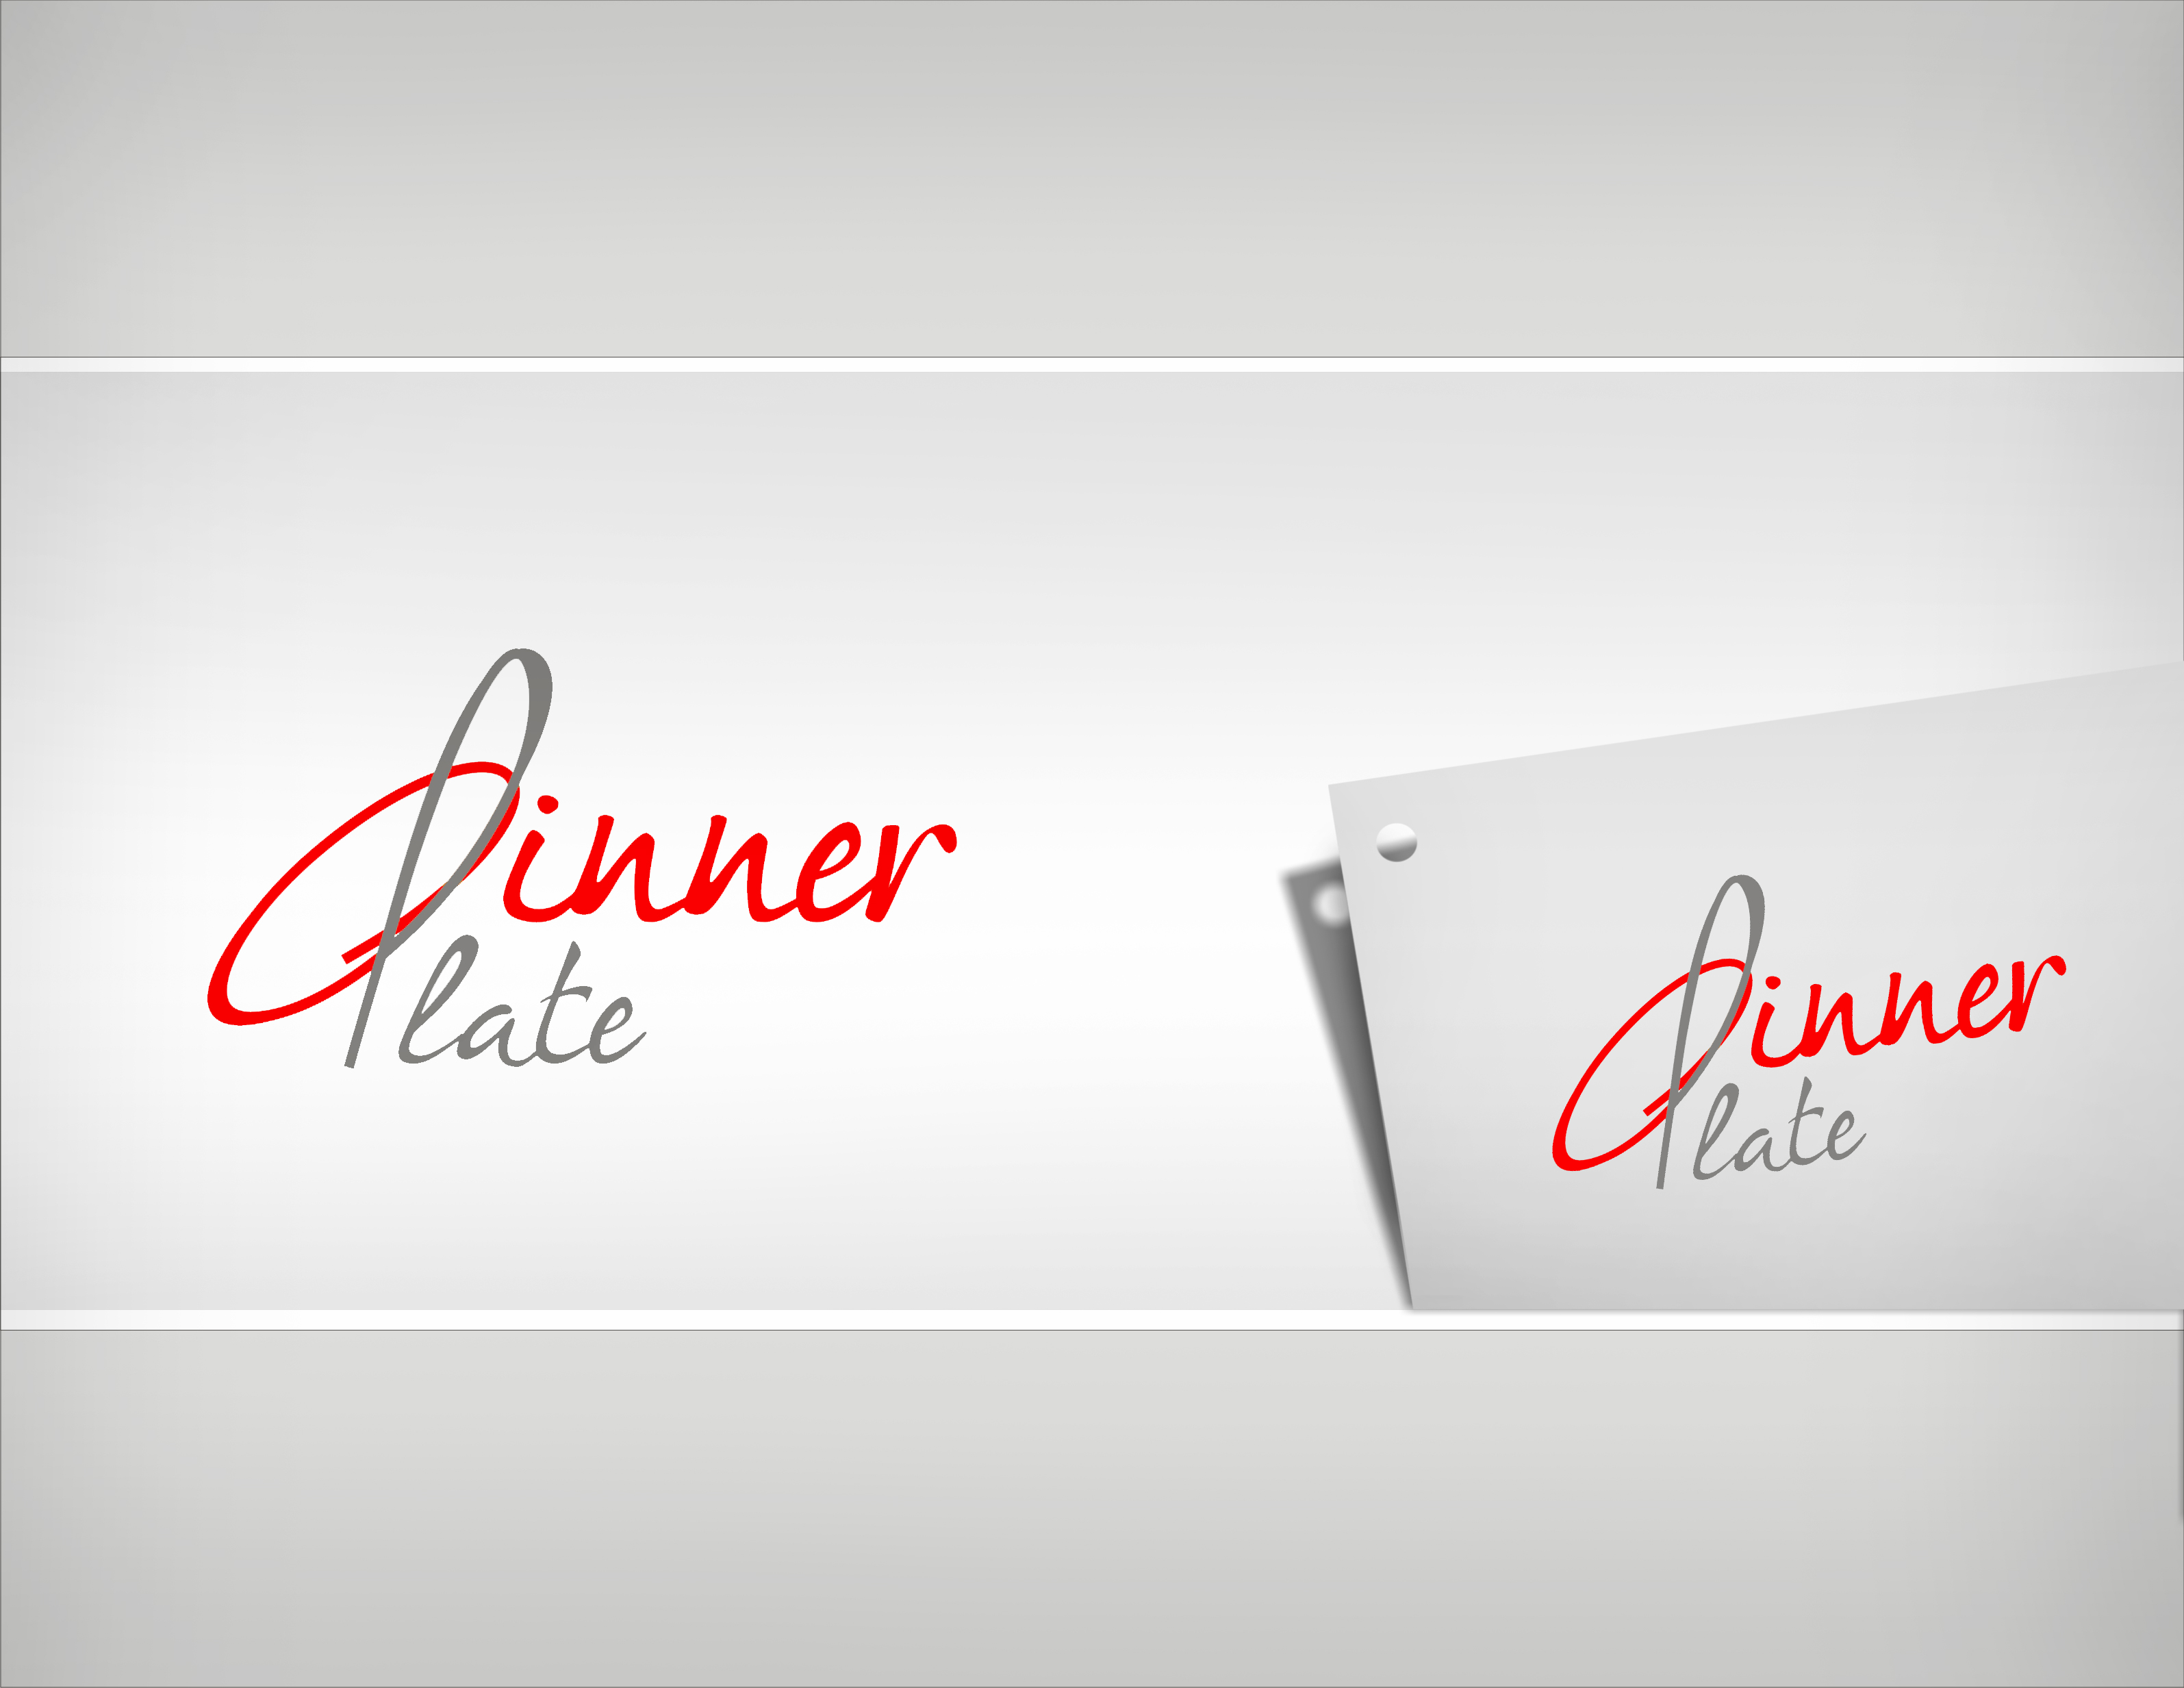 Logo Design by Sandip Kumar - Entry No. 101 in the Logo Design Contest Imaginative Logo Design for Dinner Plate.